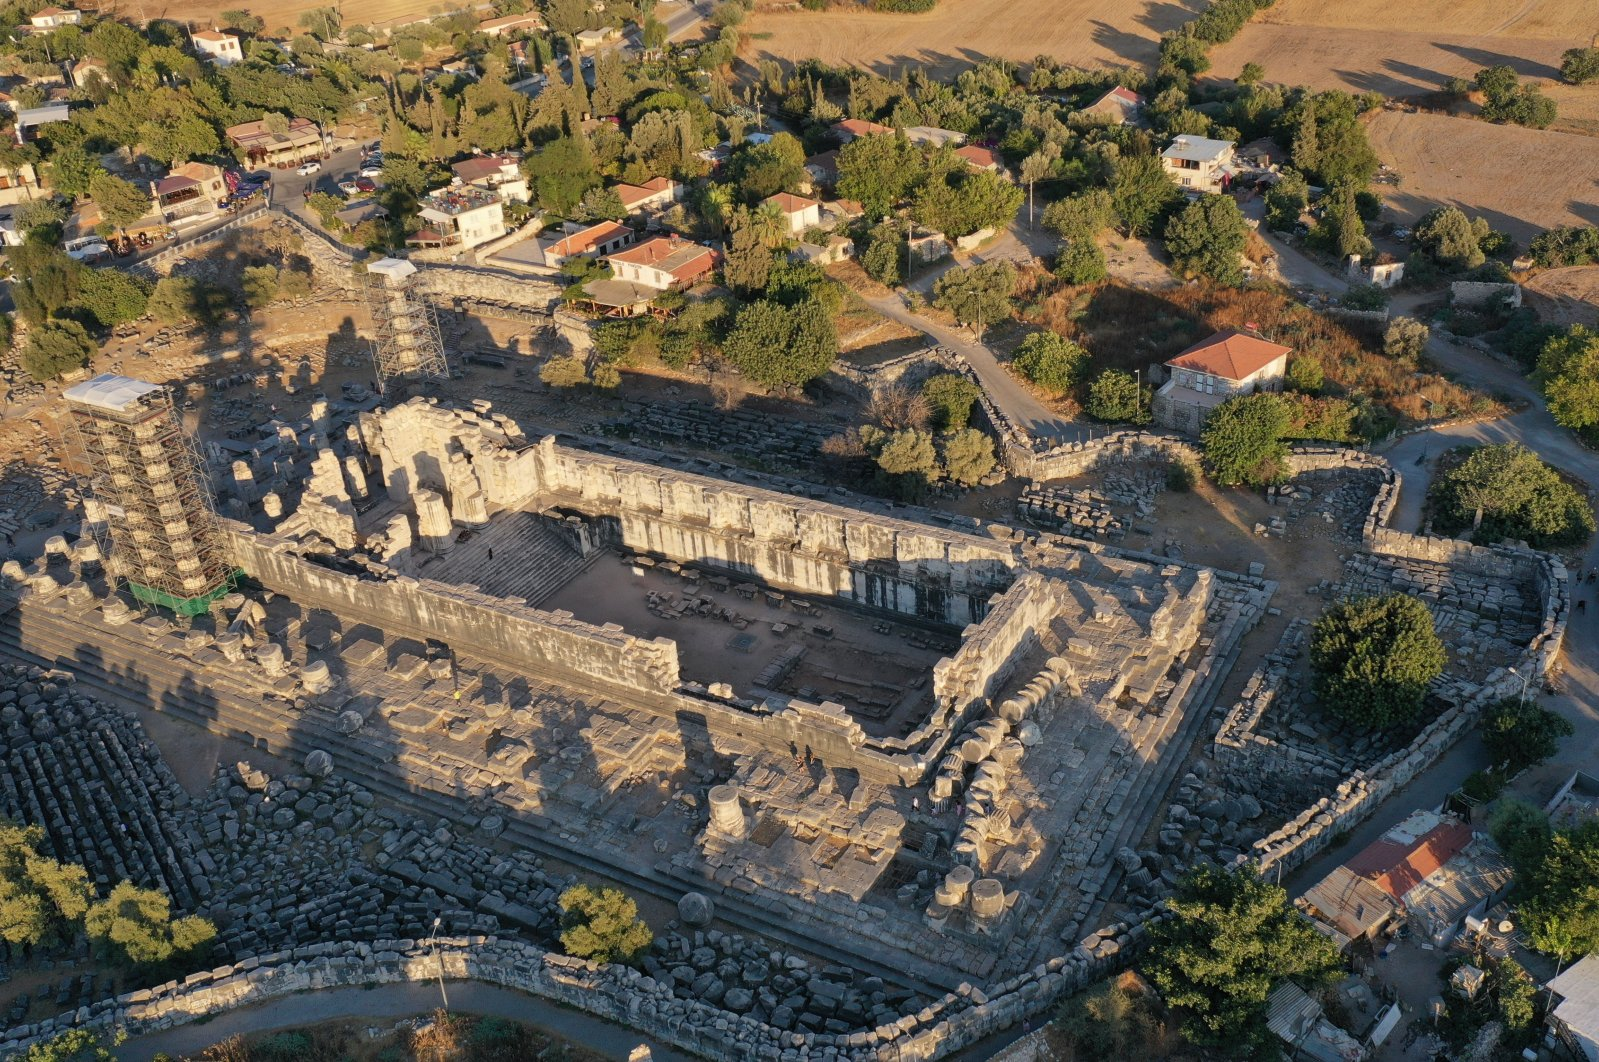 An aerial view from the Temple of Apollo, Aydın, southwestern Turkey, Aug. 18, 2021. (AA Photo)